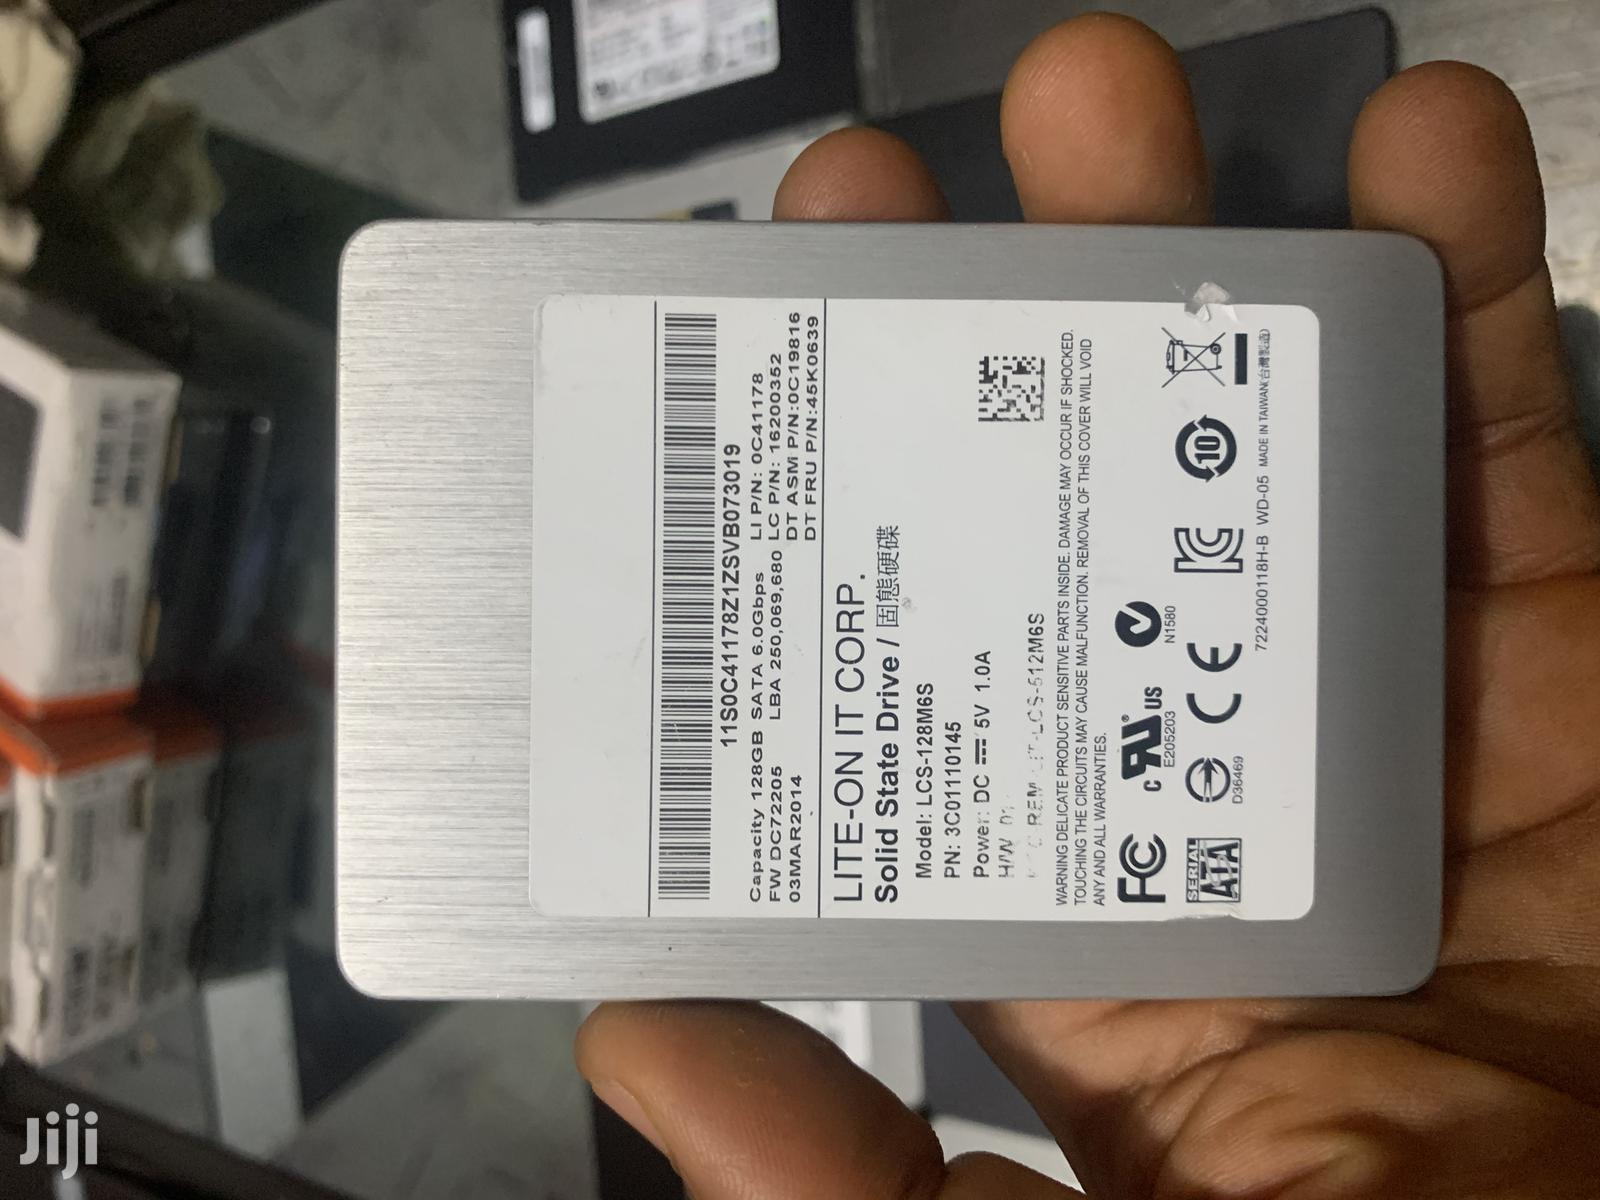 Original Ssd Drives Available Now   Computer Hardware for sale in Kokomlemle, Greater Accra, Ghana